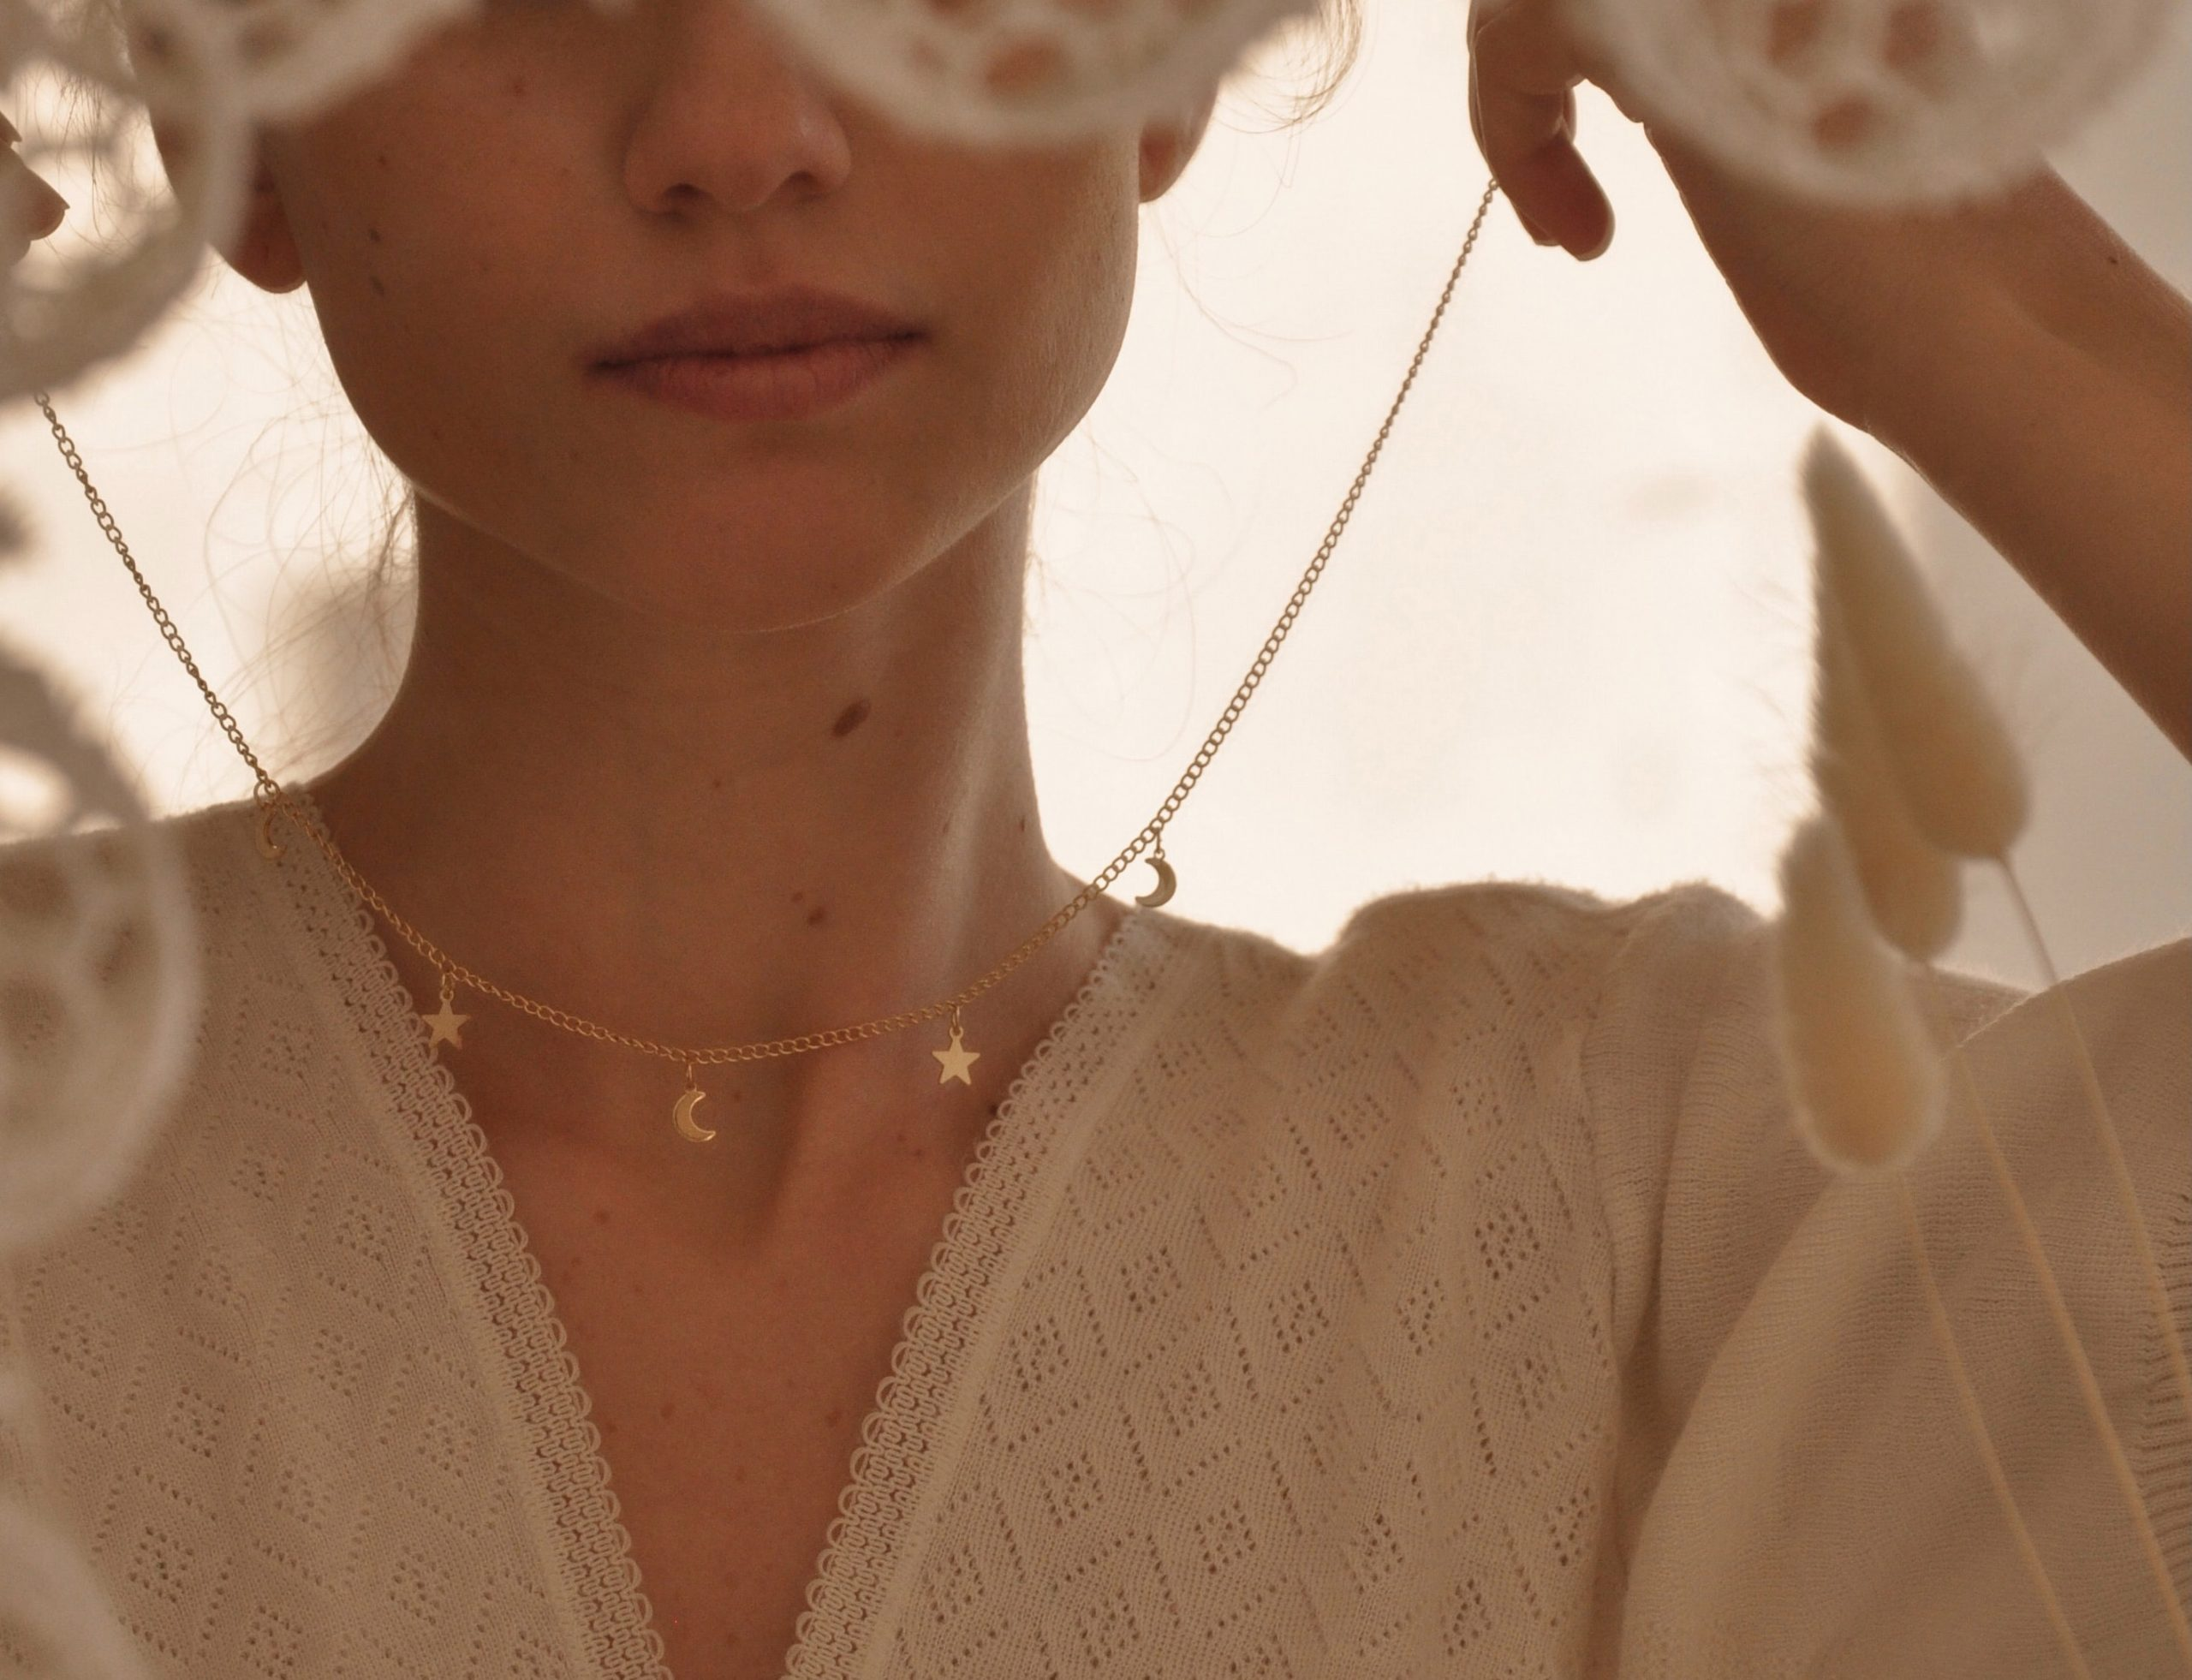 Woman putting on gold necklace